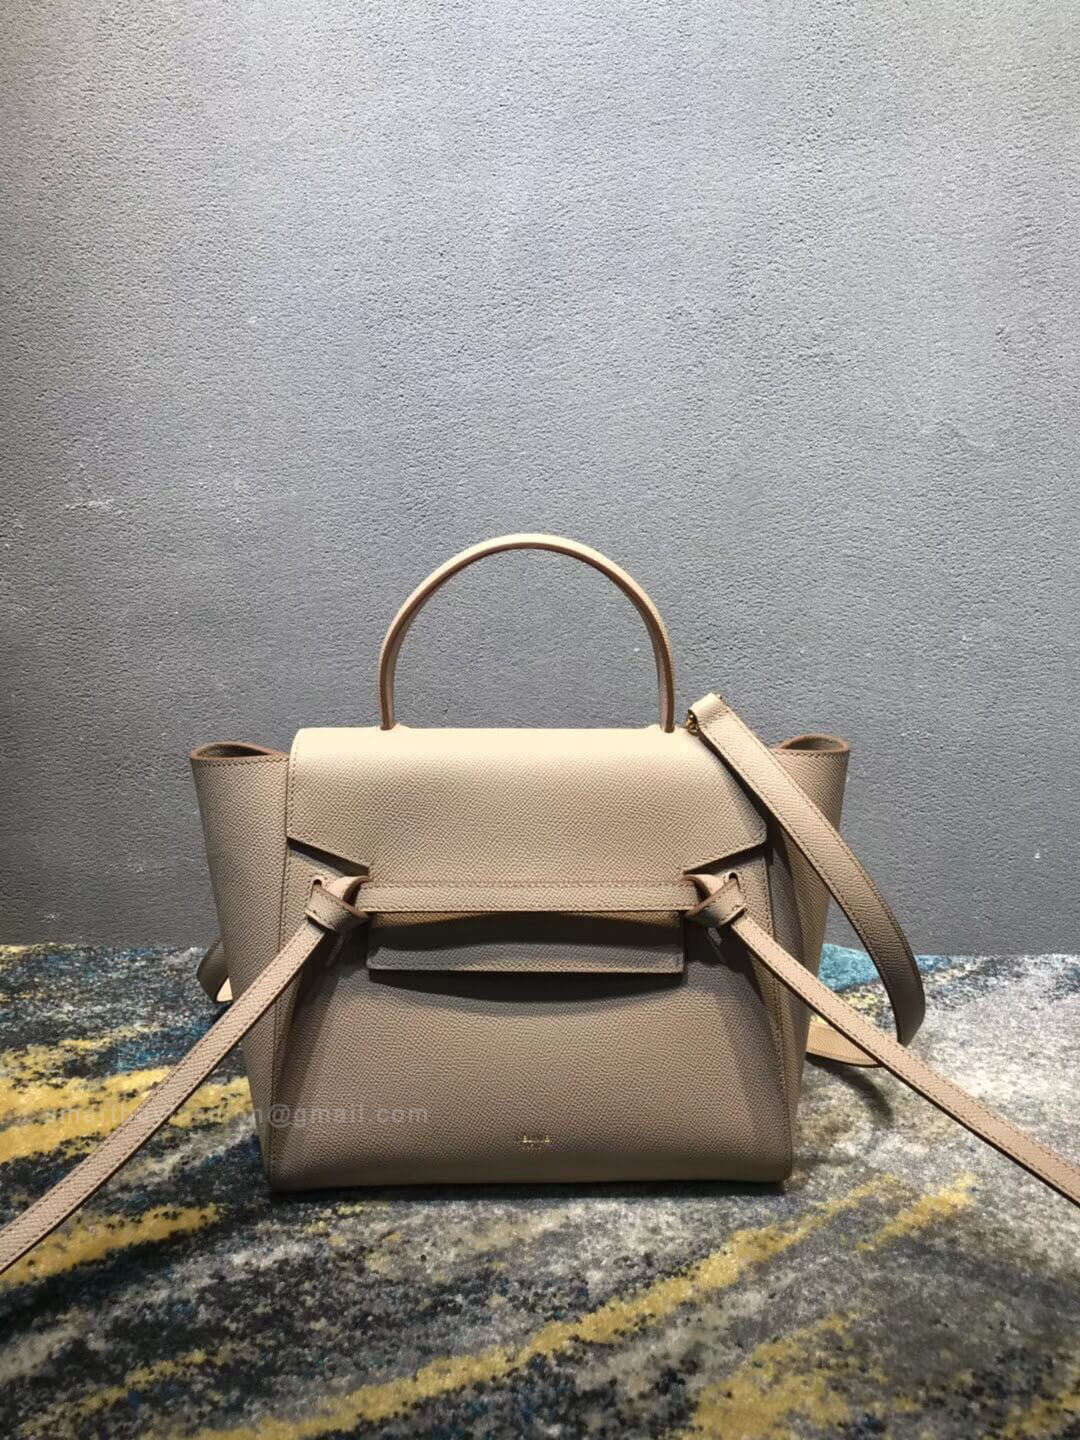 Celine Micro Belt Bag In Light Taupe Grained Calfskin